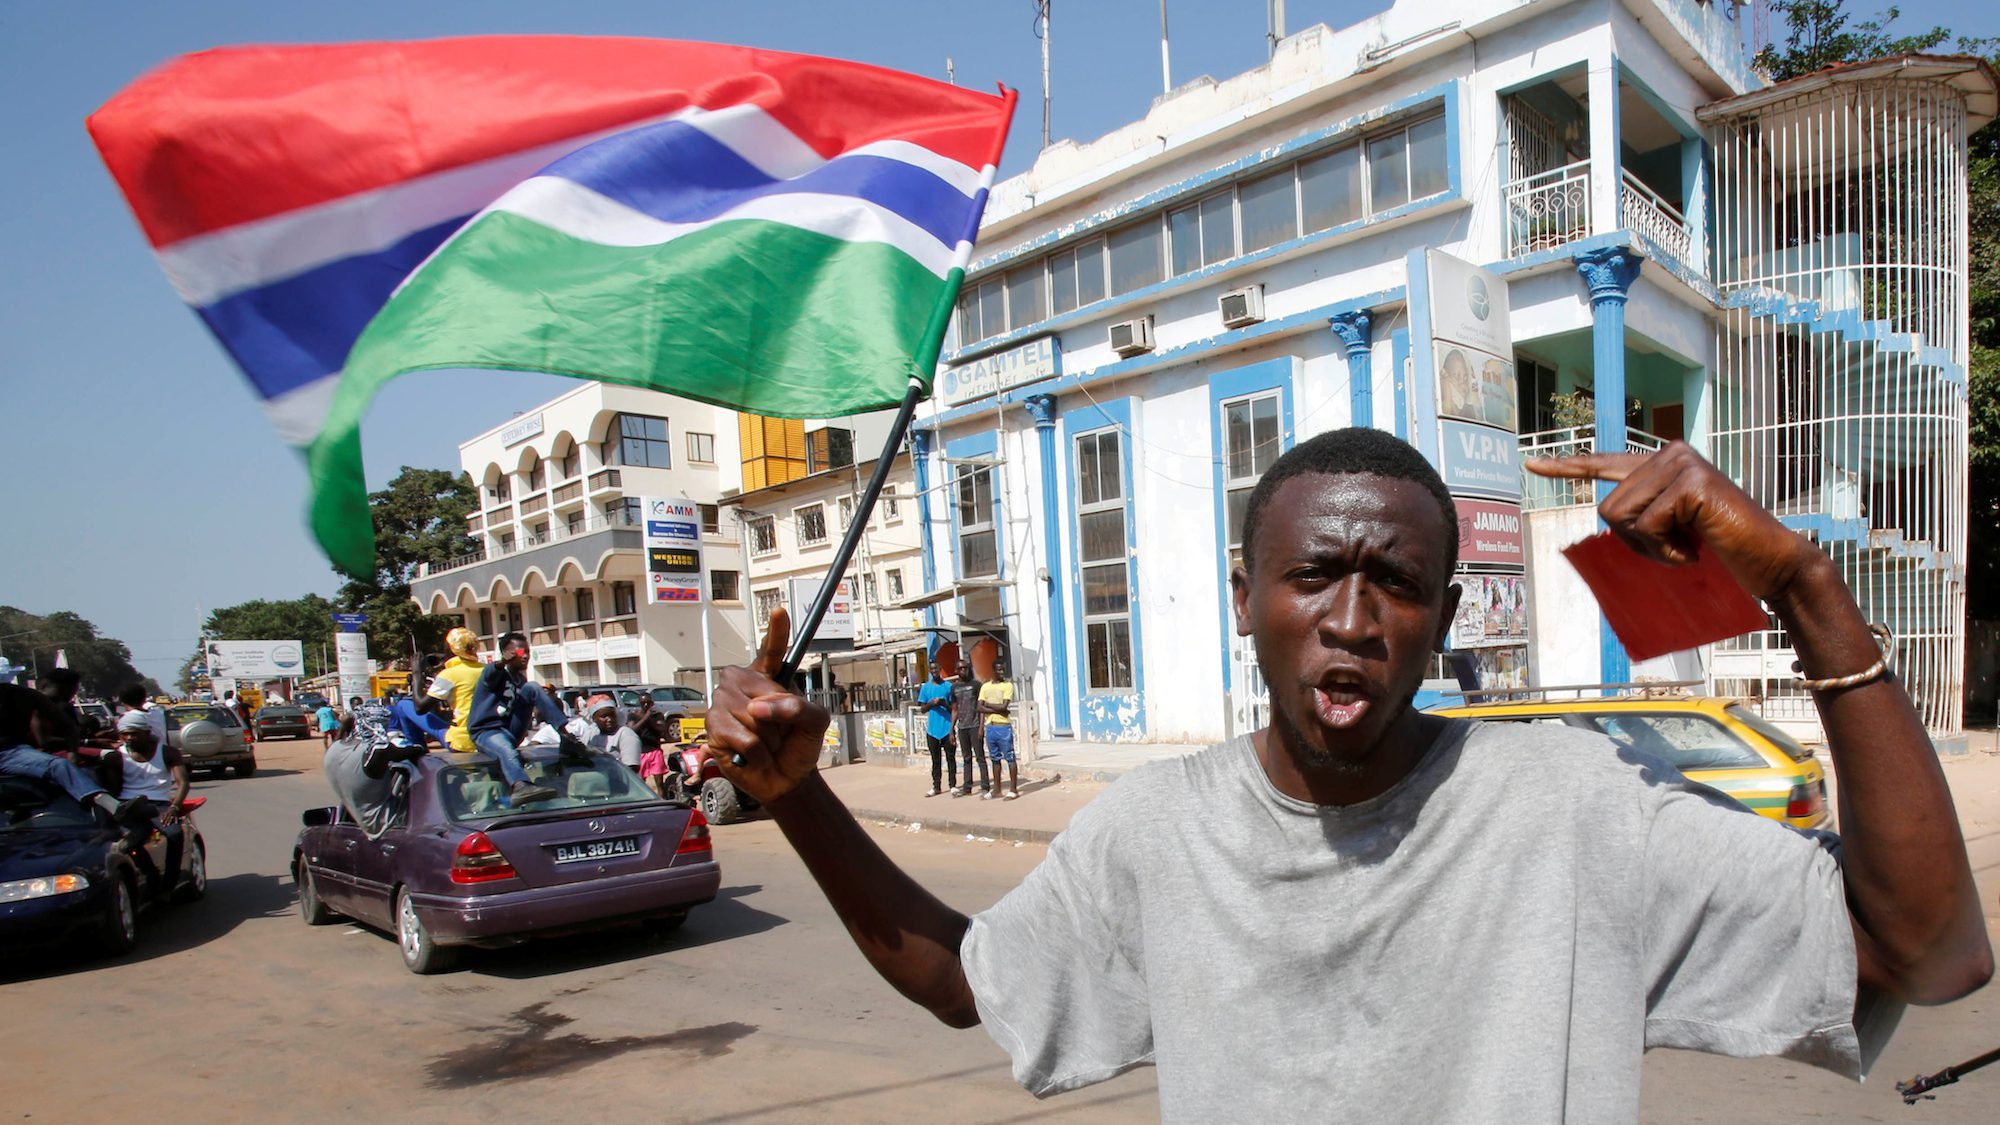 Celebrations in Banjul, Gambia after the election of Dec 1 led to the win of Adama Barrow.